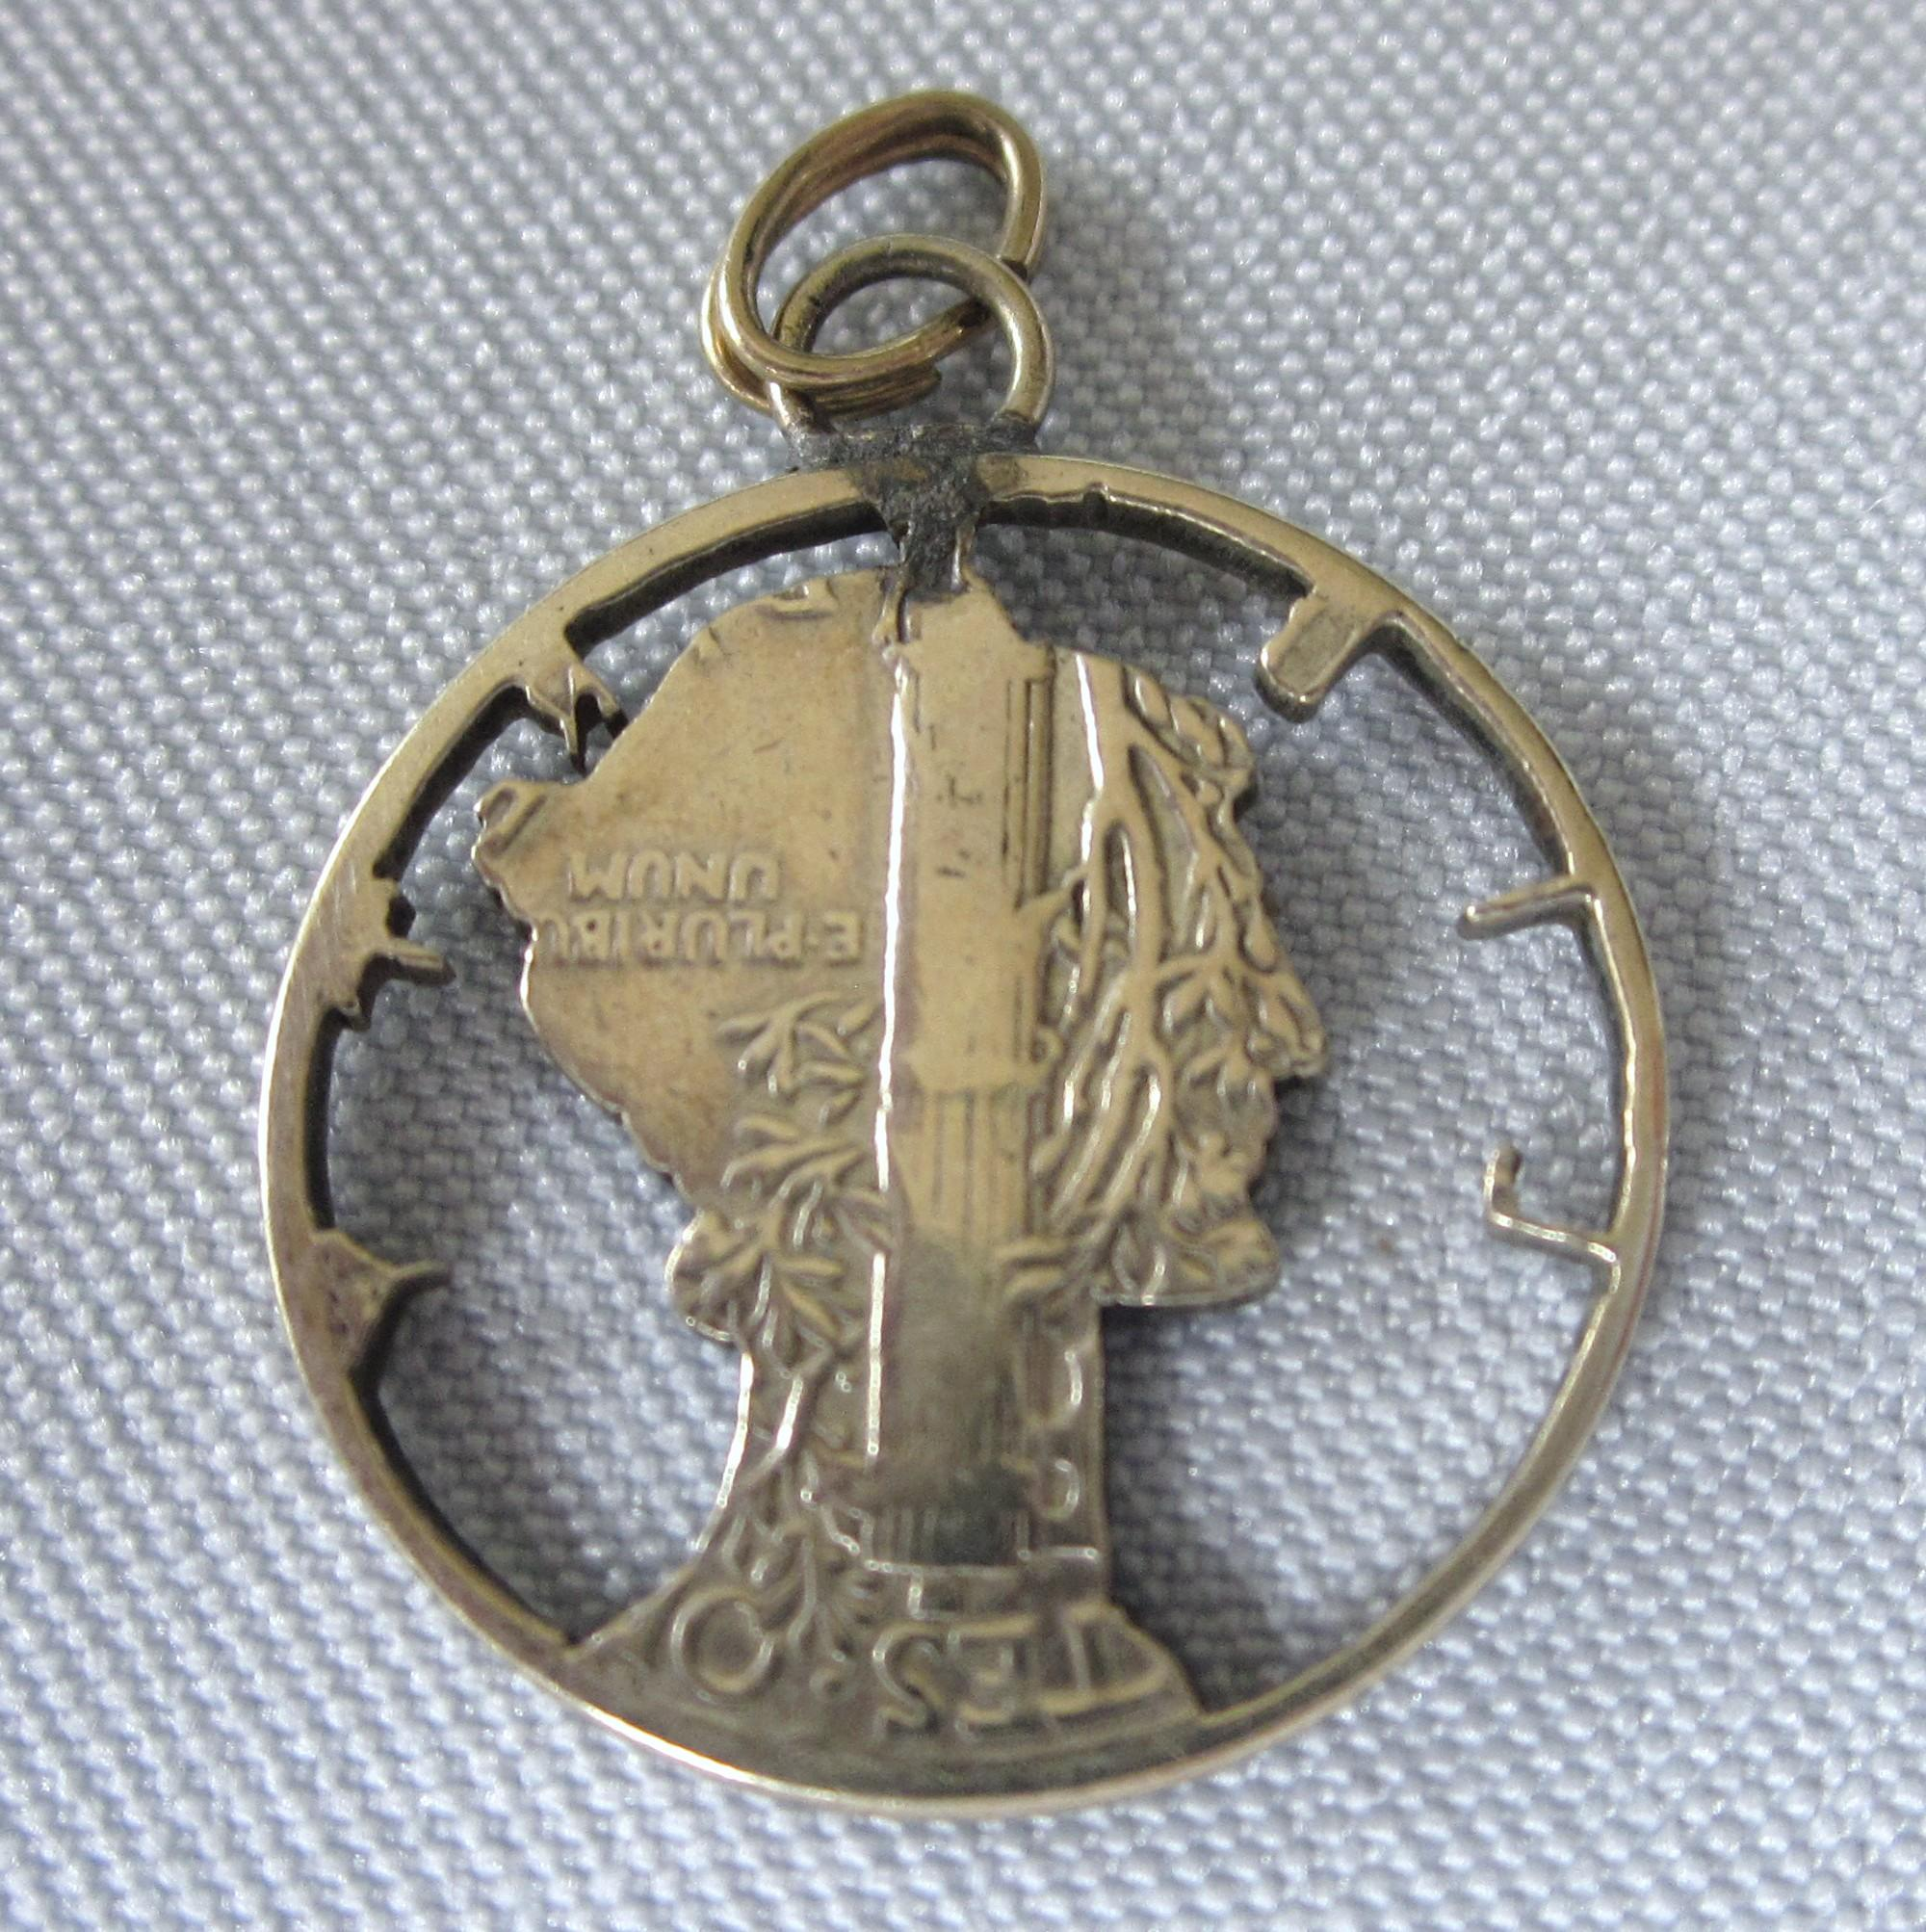 haircut san diego 1944 mercury liberty dime cut out charm pendant from 1560